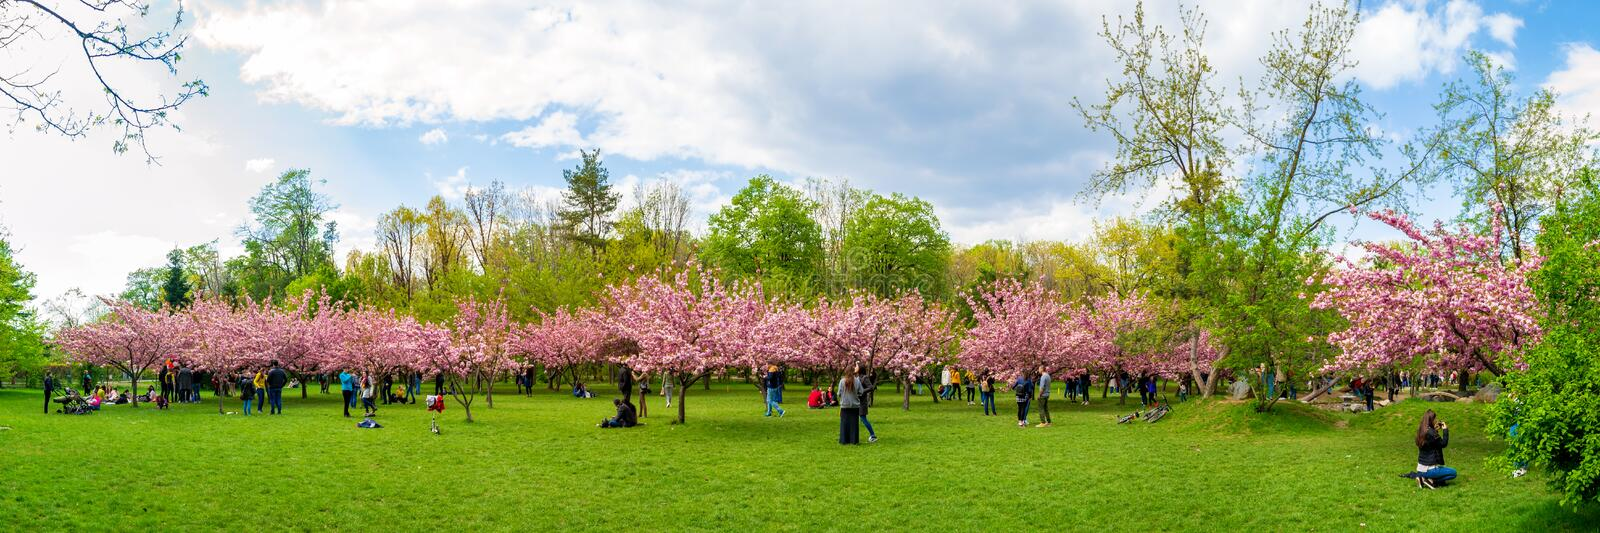 Cherry blossom trees and tourists in the Japanese Garden of Bucharest`s King Michael I Park formerly Herastrau Park, Romania stock image